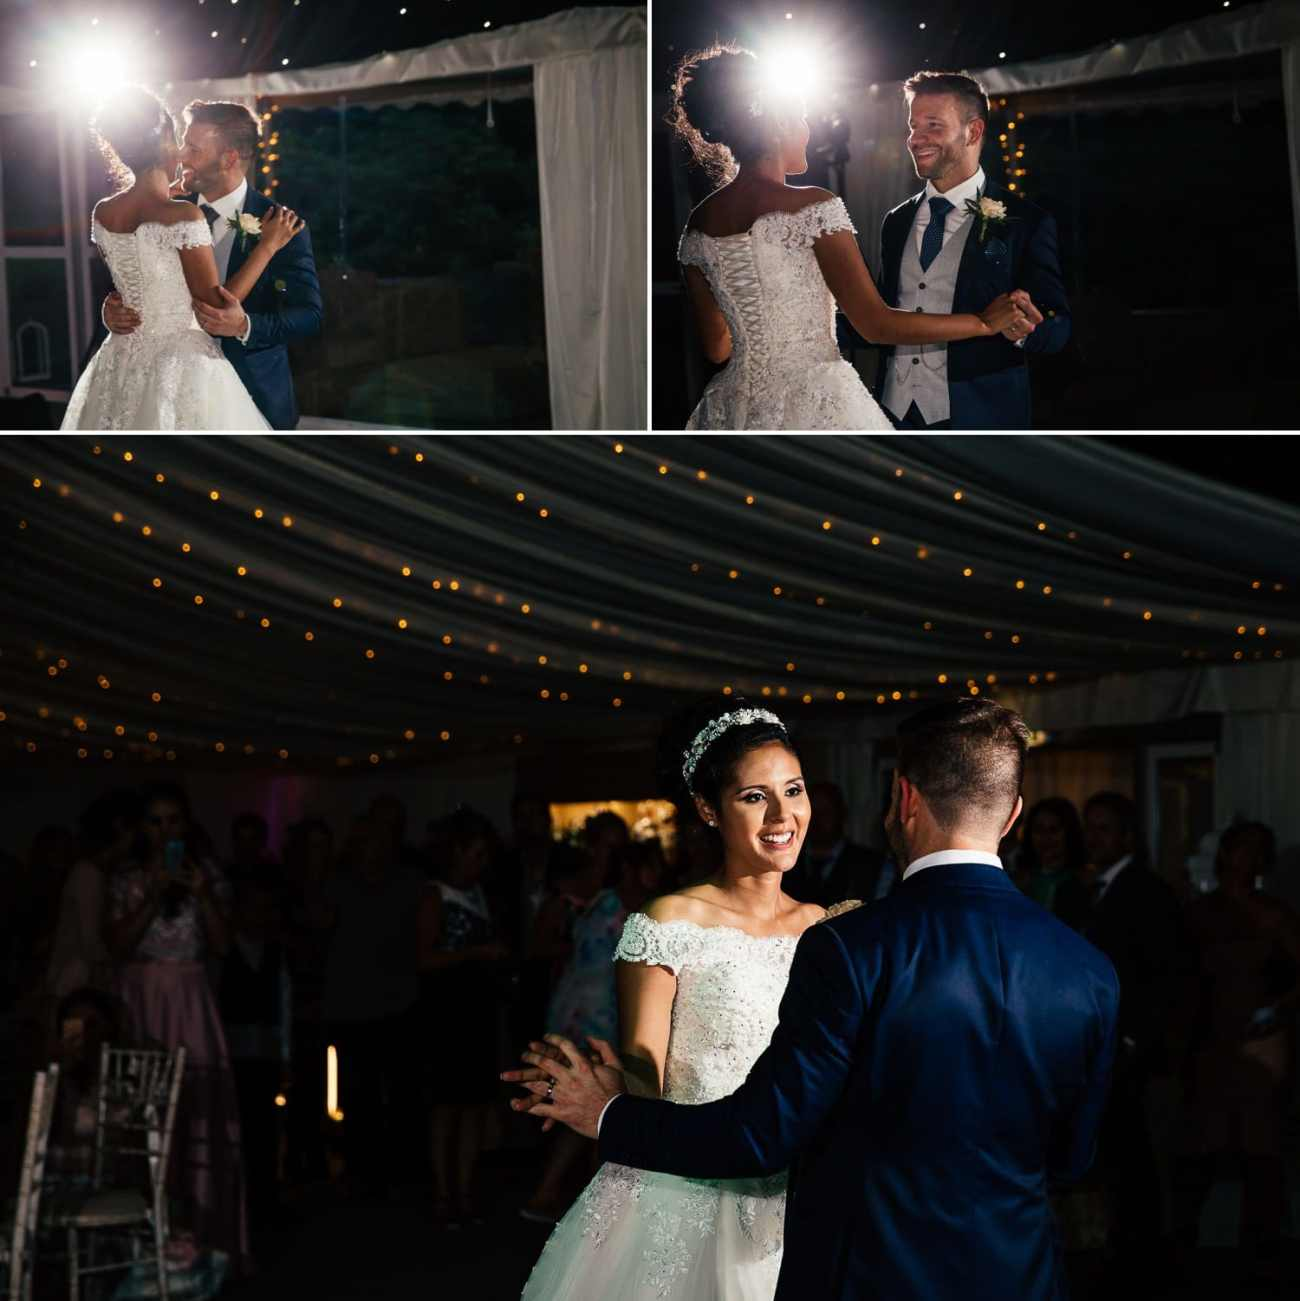 Wedding photography of first dance at Soughton Hall, Chester, Cheshire